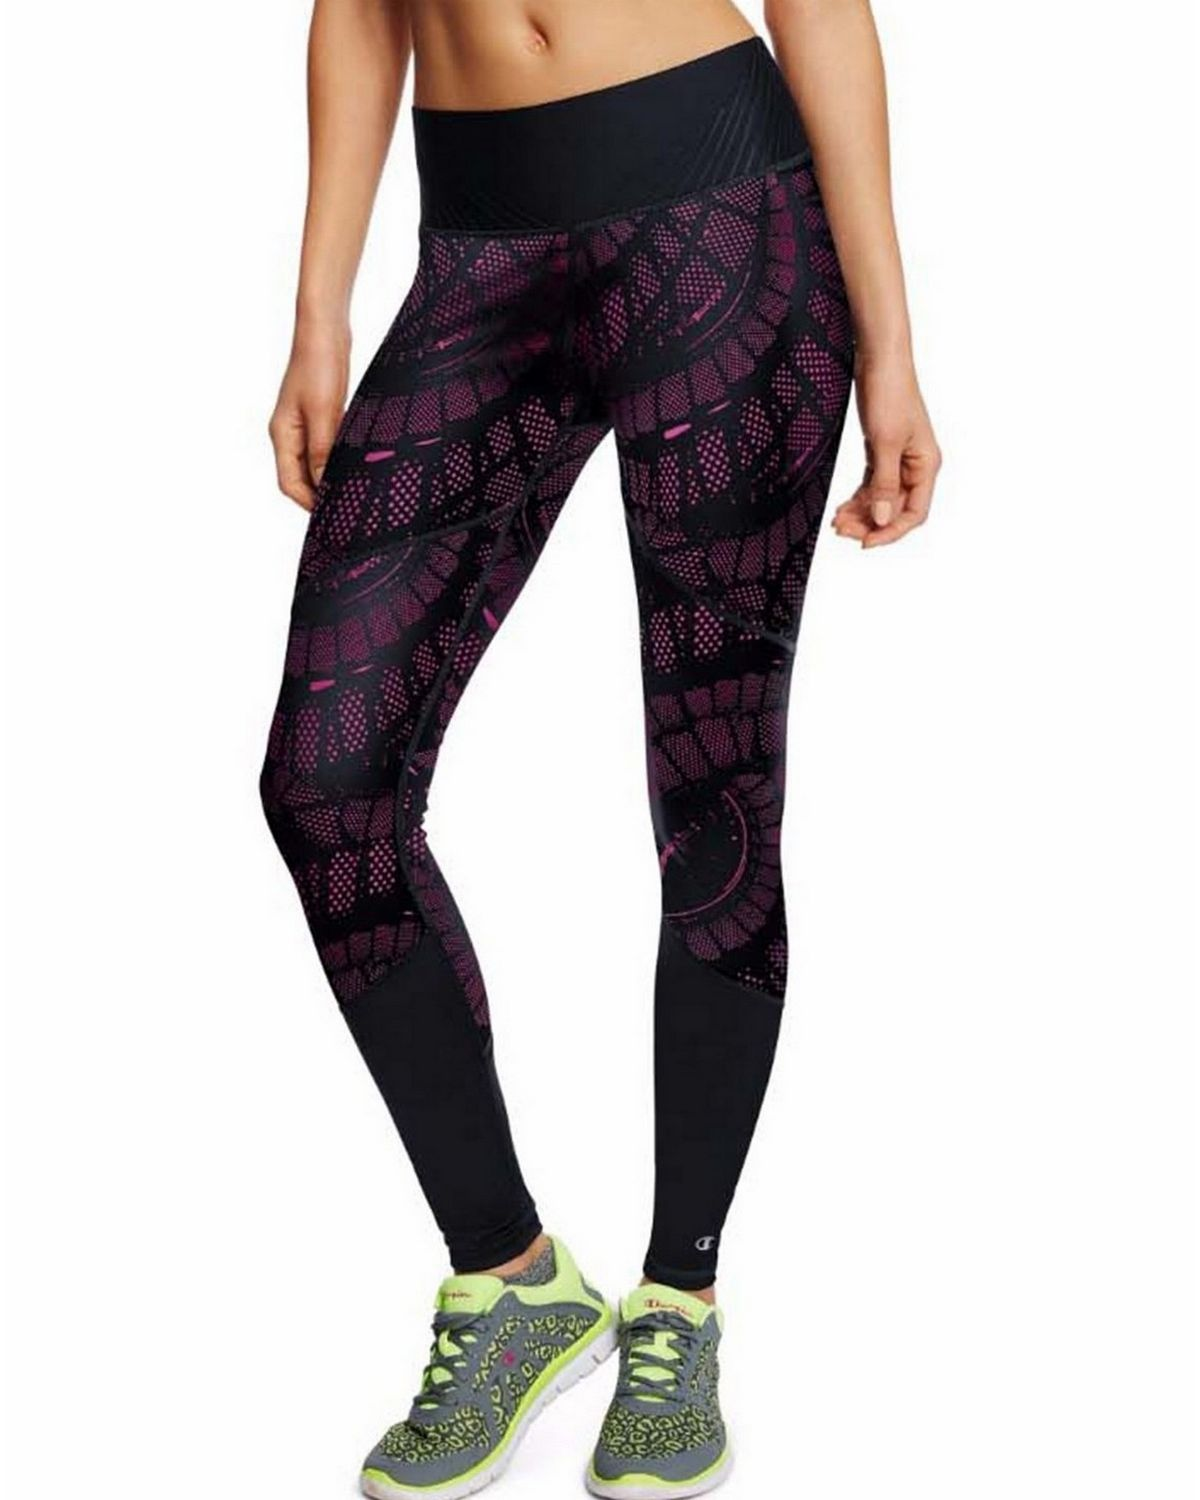 Champion M0940p Womens Printed Run Tights - Berry Delight Spiral Staircase/Black - M M0940P